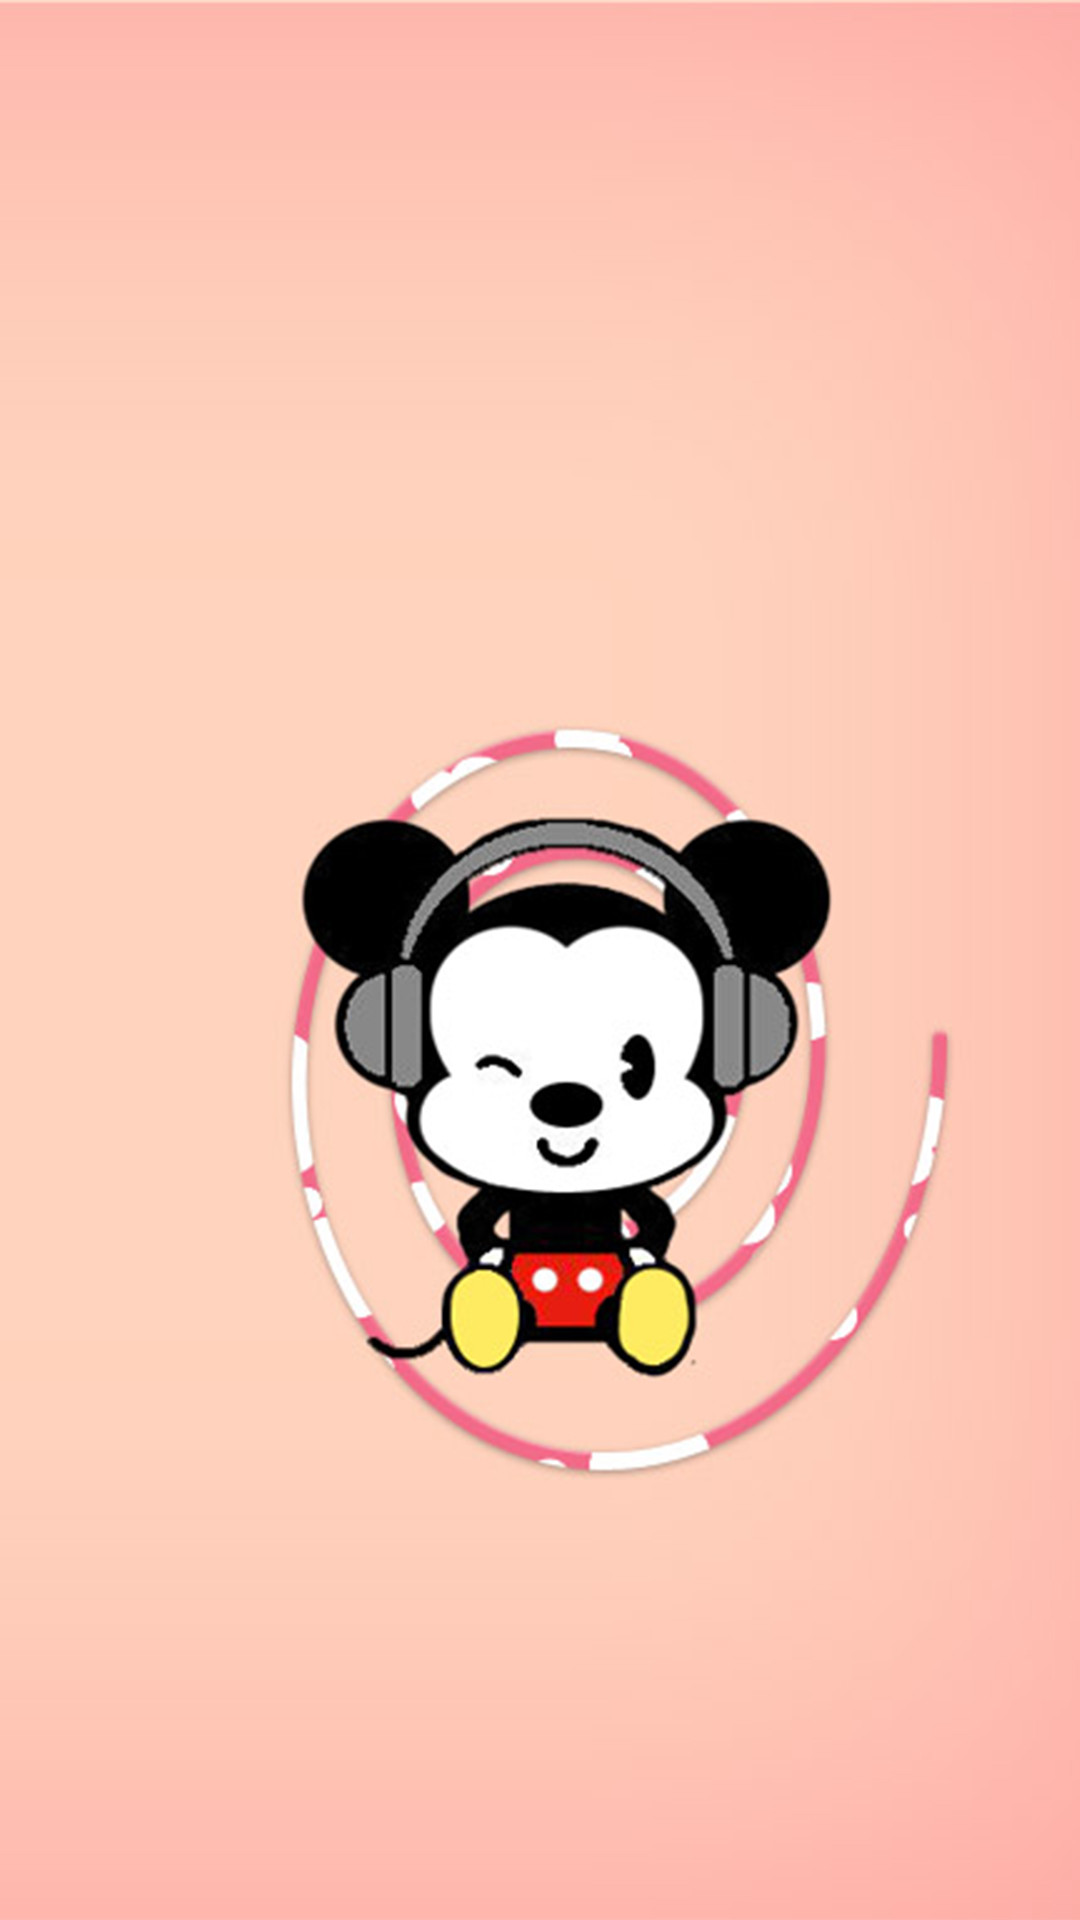 Wallpaper iphone tumblr mickey mouse